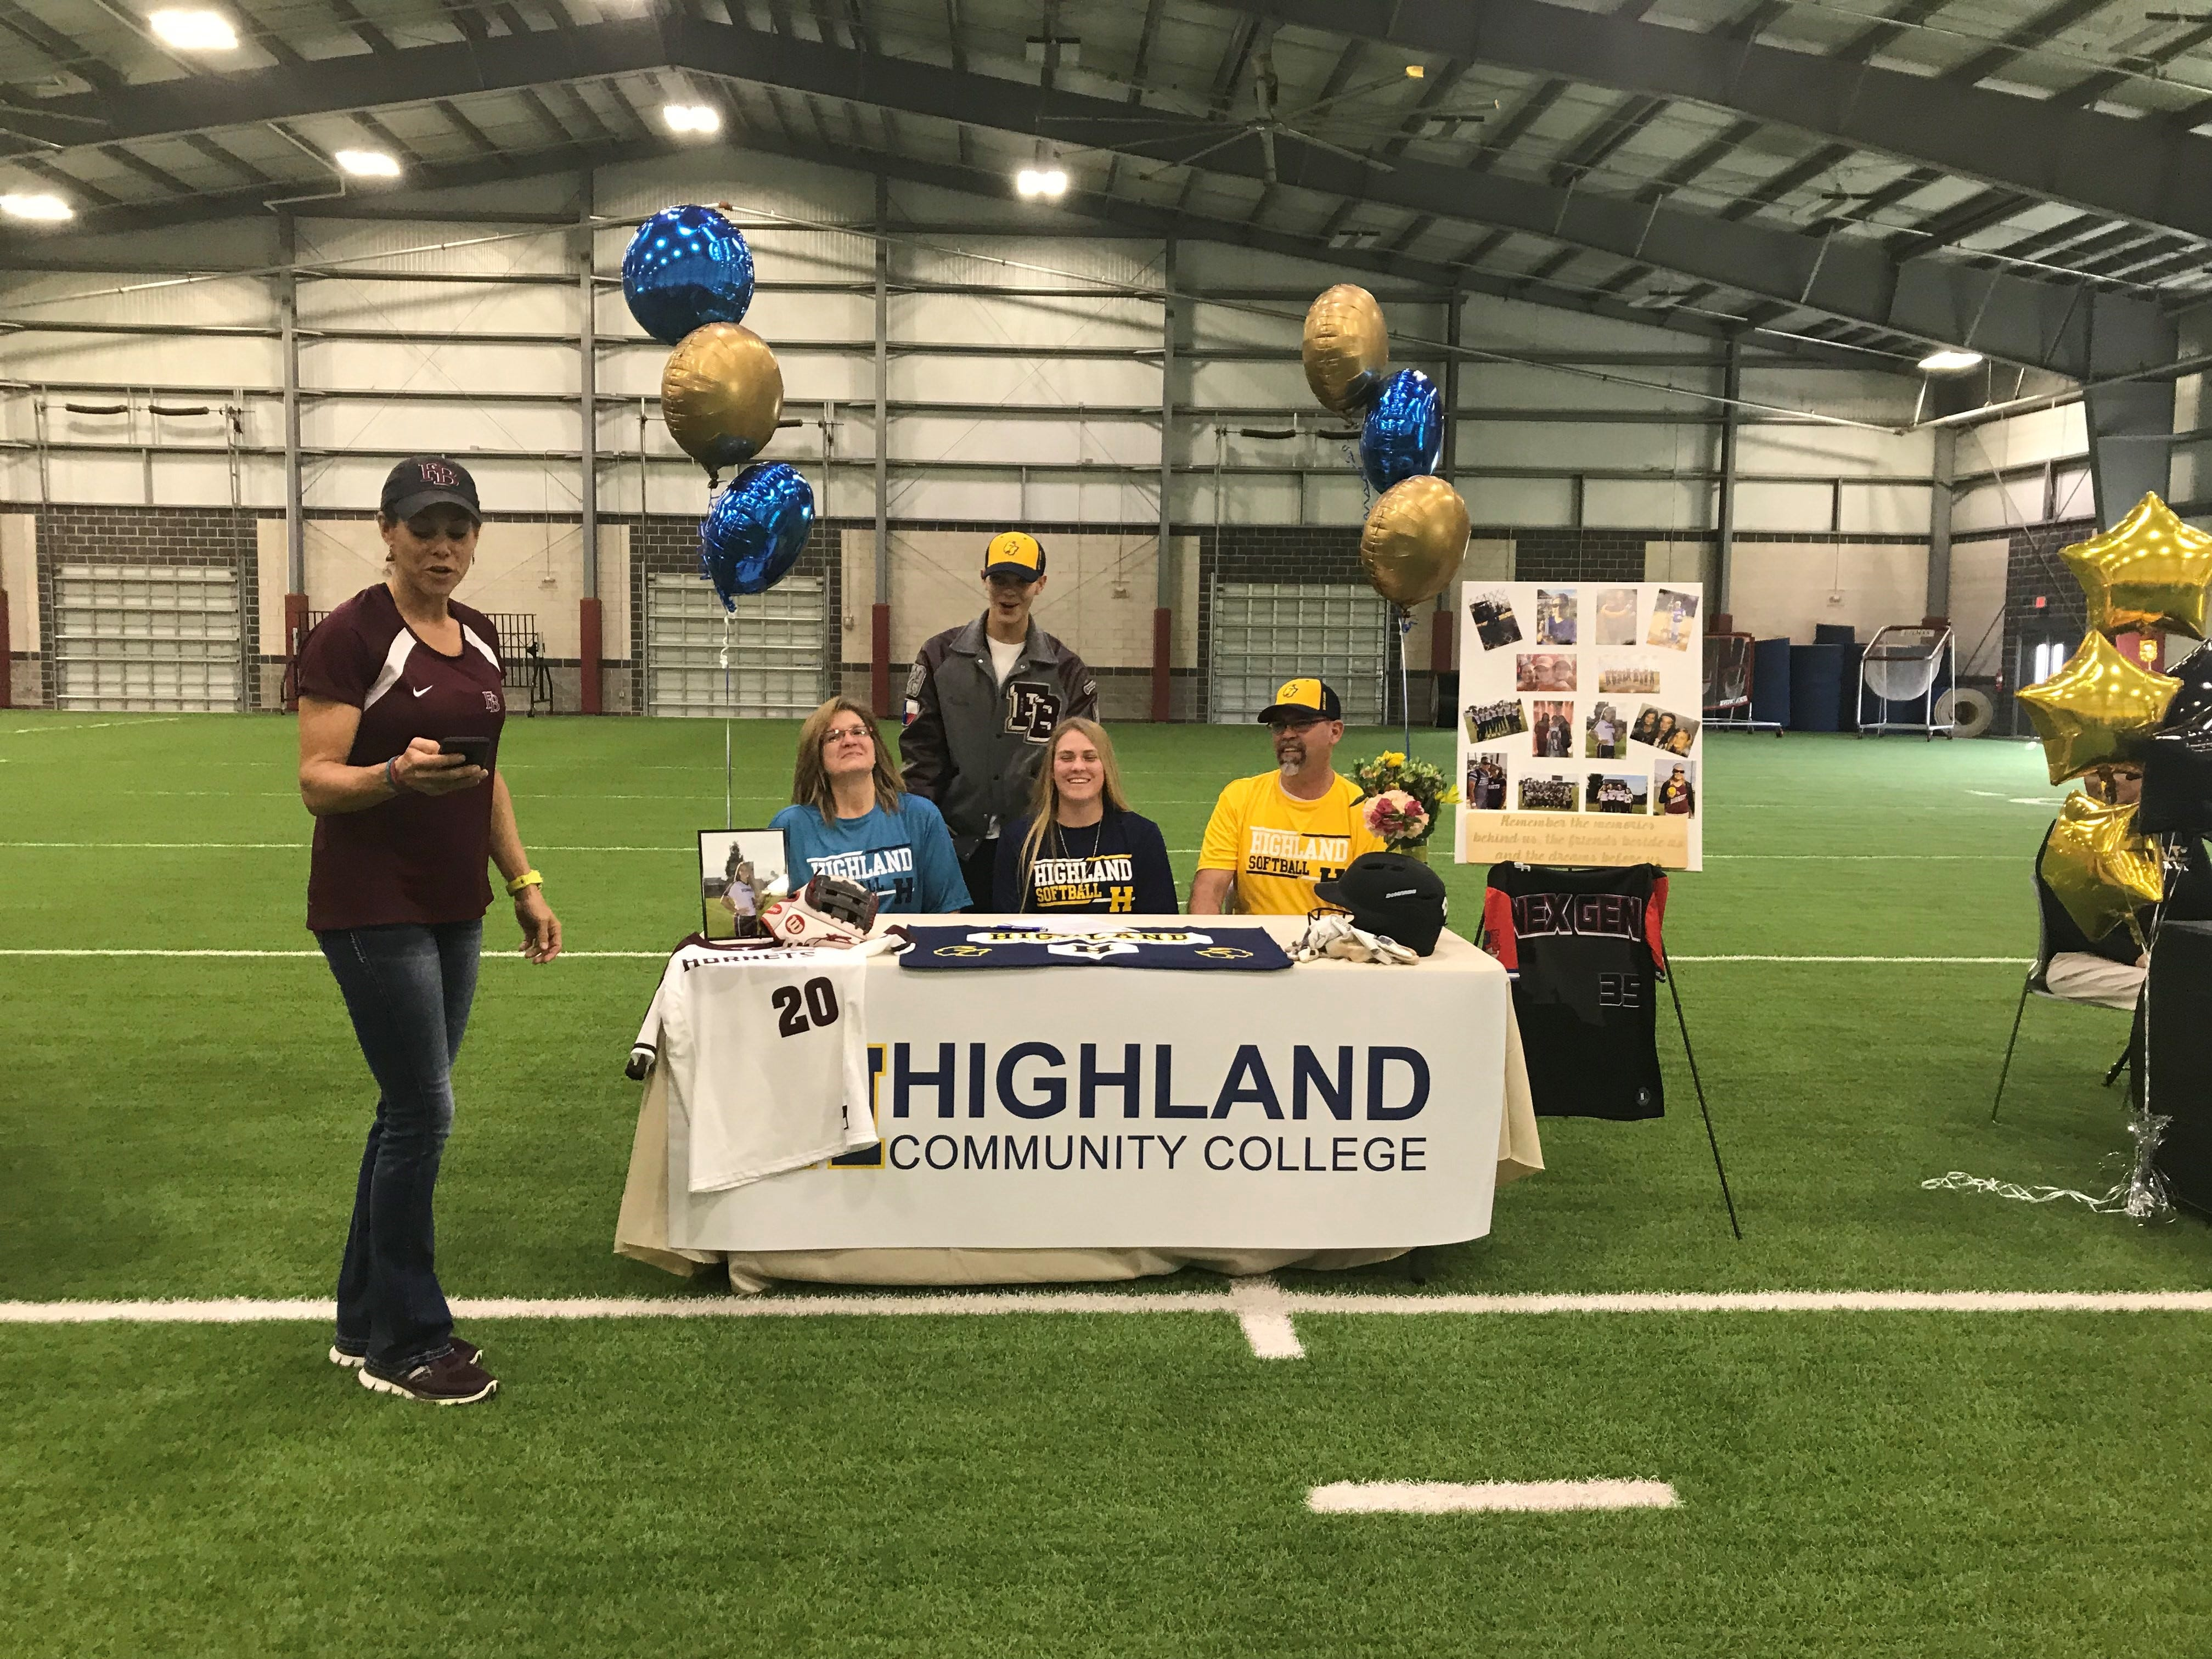 Dakota Miller signed with Highland Community College on Wednesday, Feb. 6 at Flour Bluff's athletic facility.